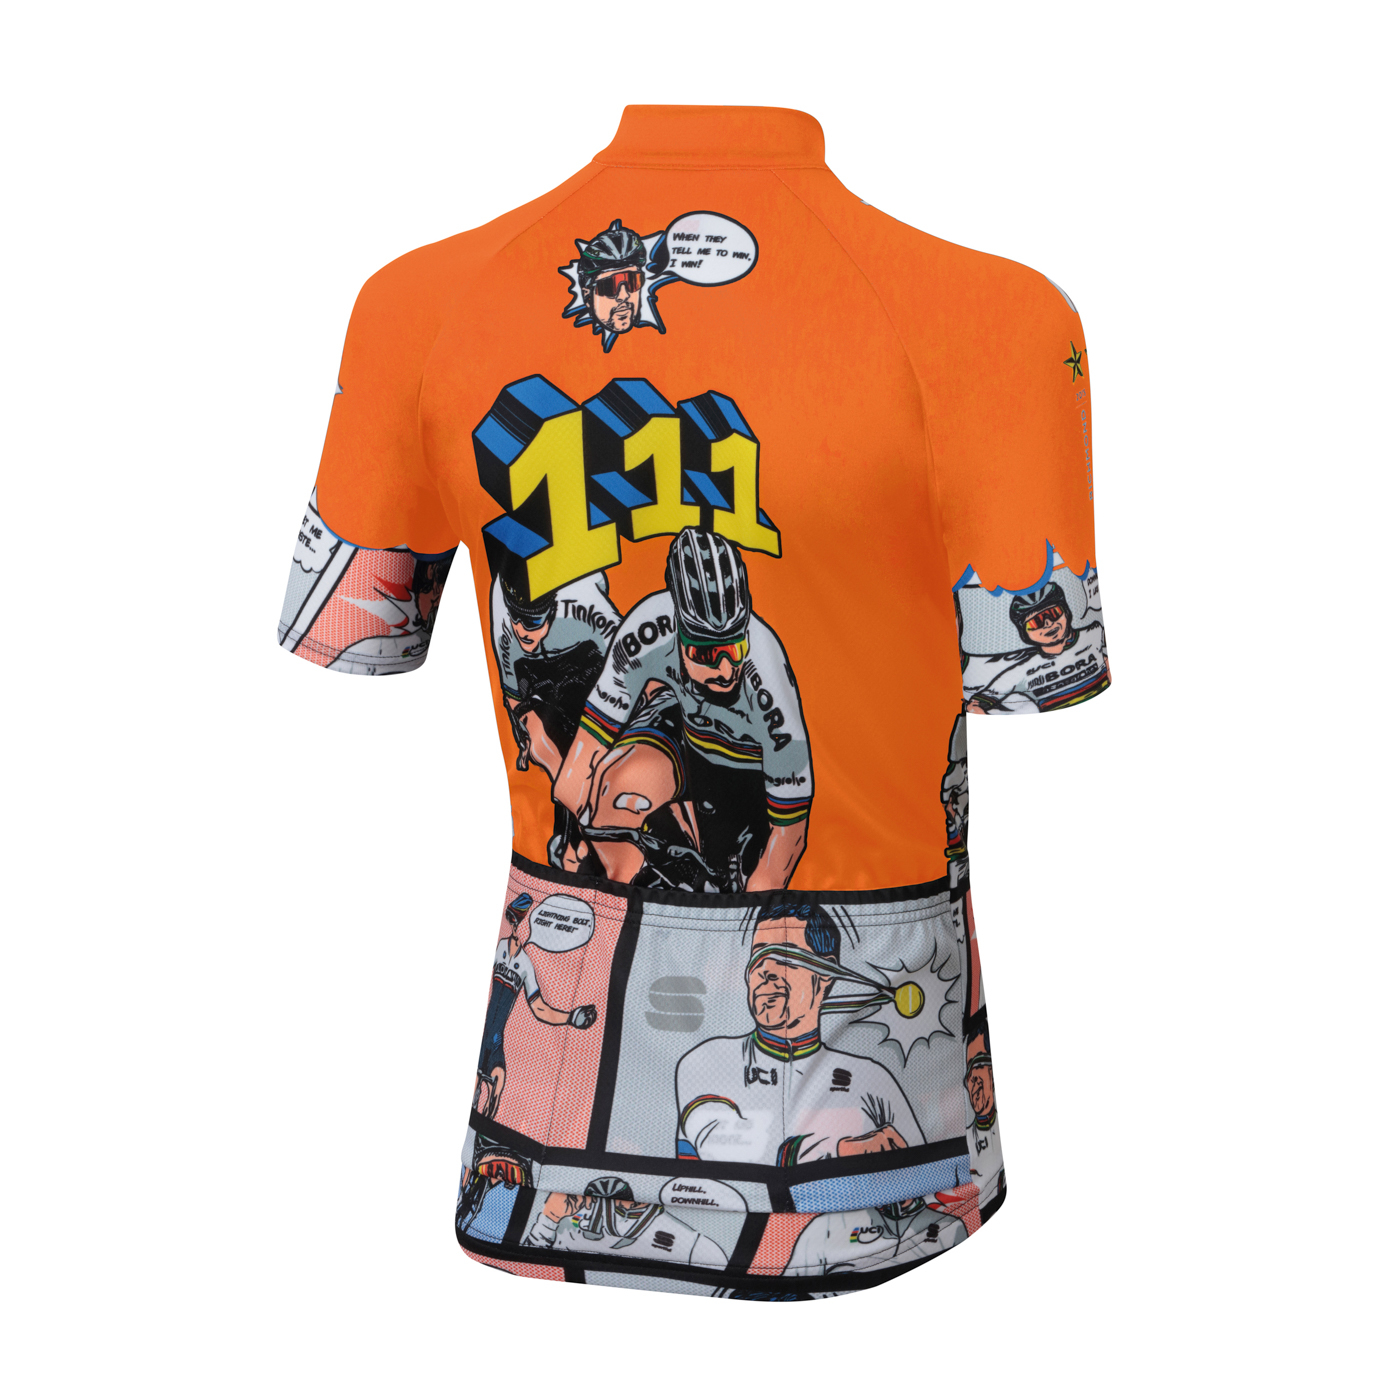 | Sportful Fietsshirt Korte mouwen voor Kids Oranje - SF Super Peter Jersey-Orange Sdr